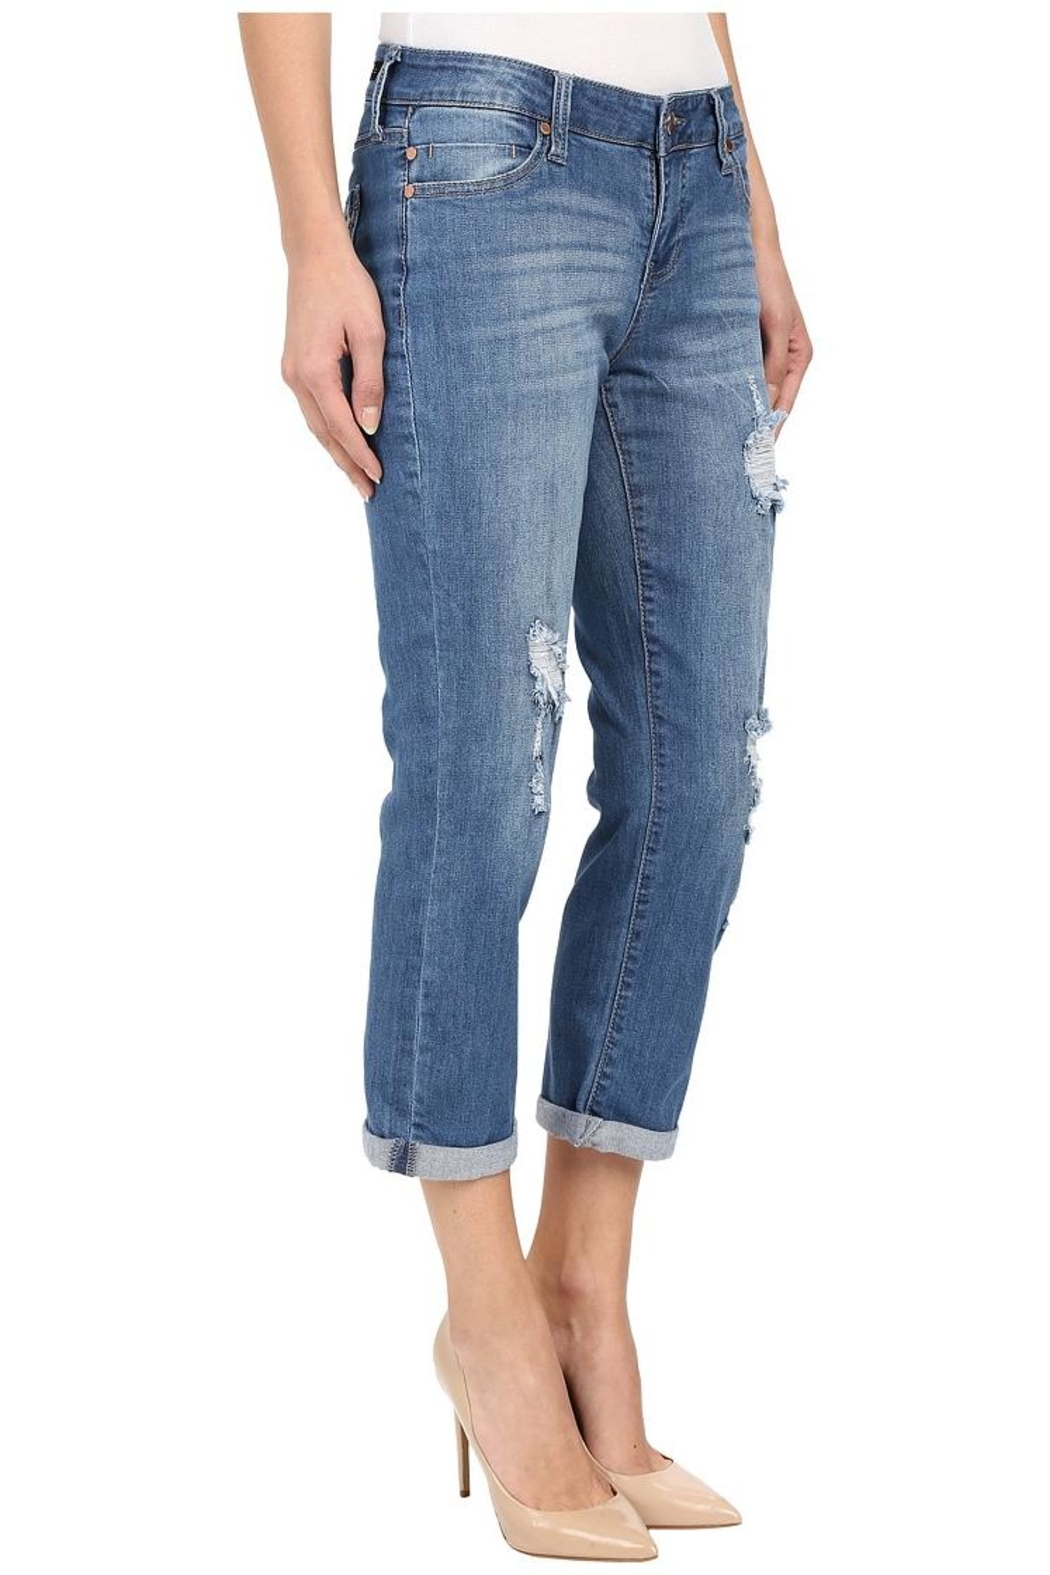 Liverpool Jeans Company Distressed Boyfriend Jeans - Side Cropped Image